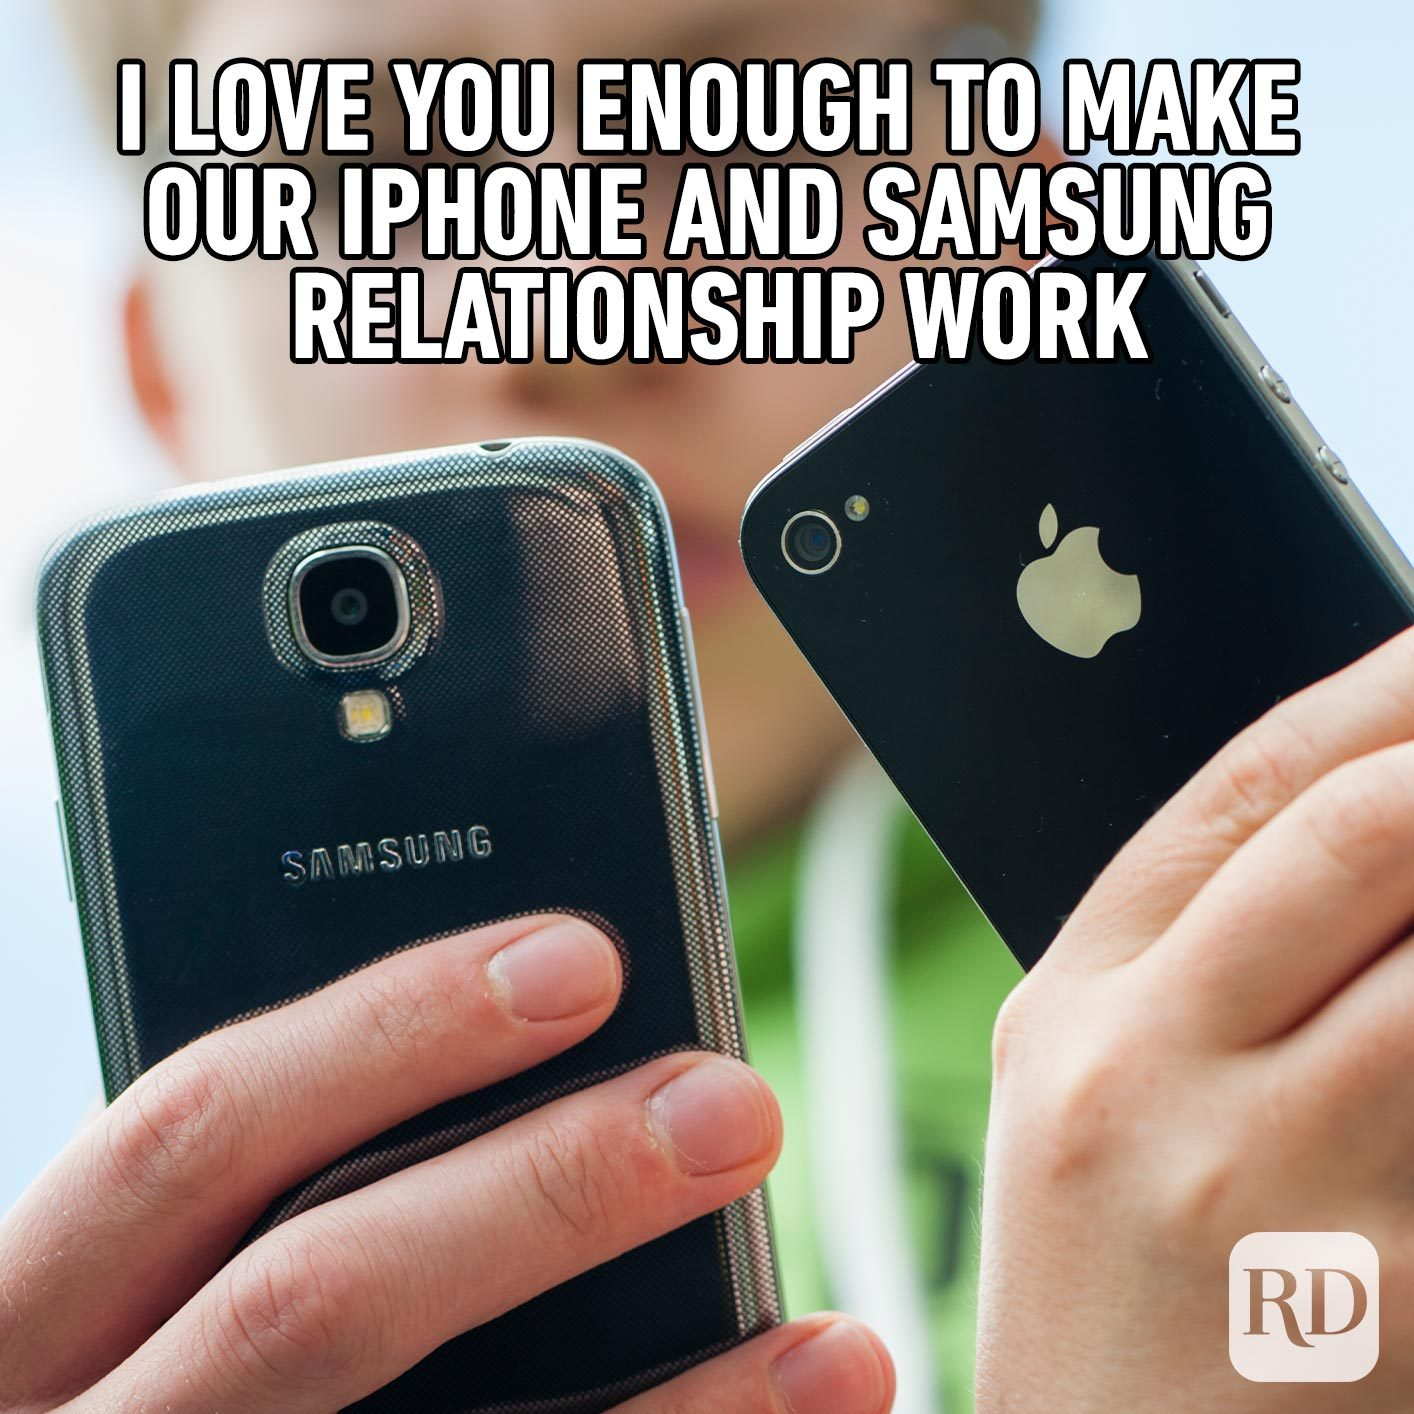 Two different phones beside each other. Meme text: I love you enough to make our iPhone and Samsung relationship work